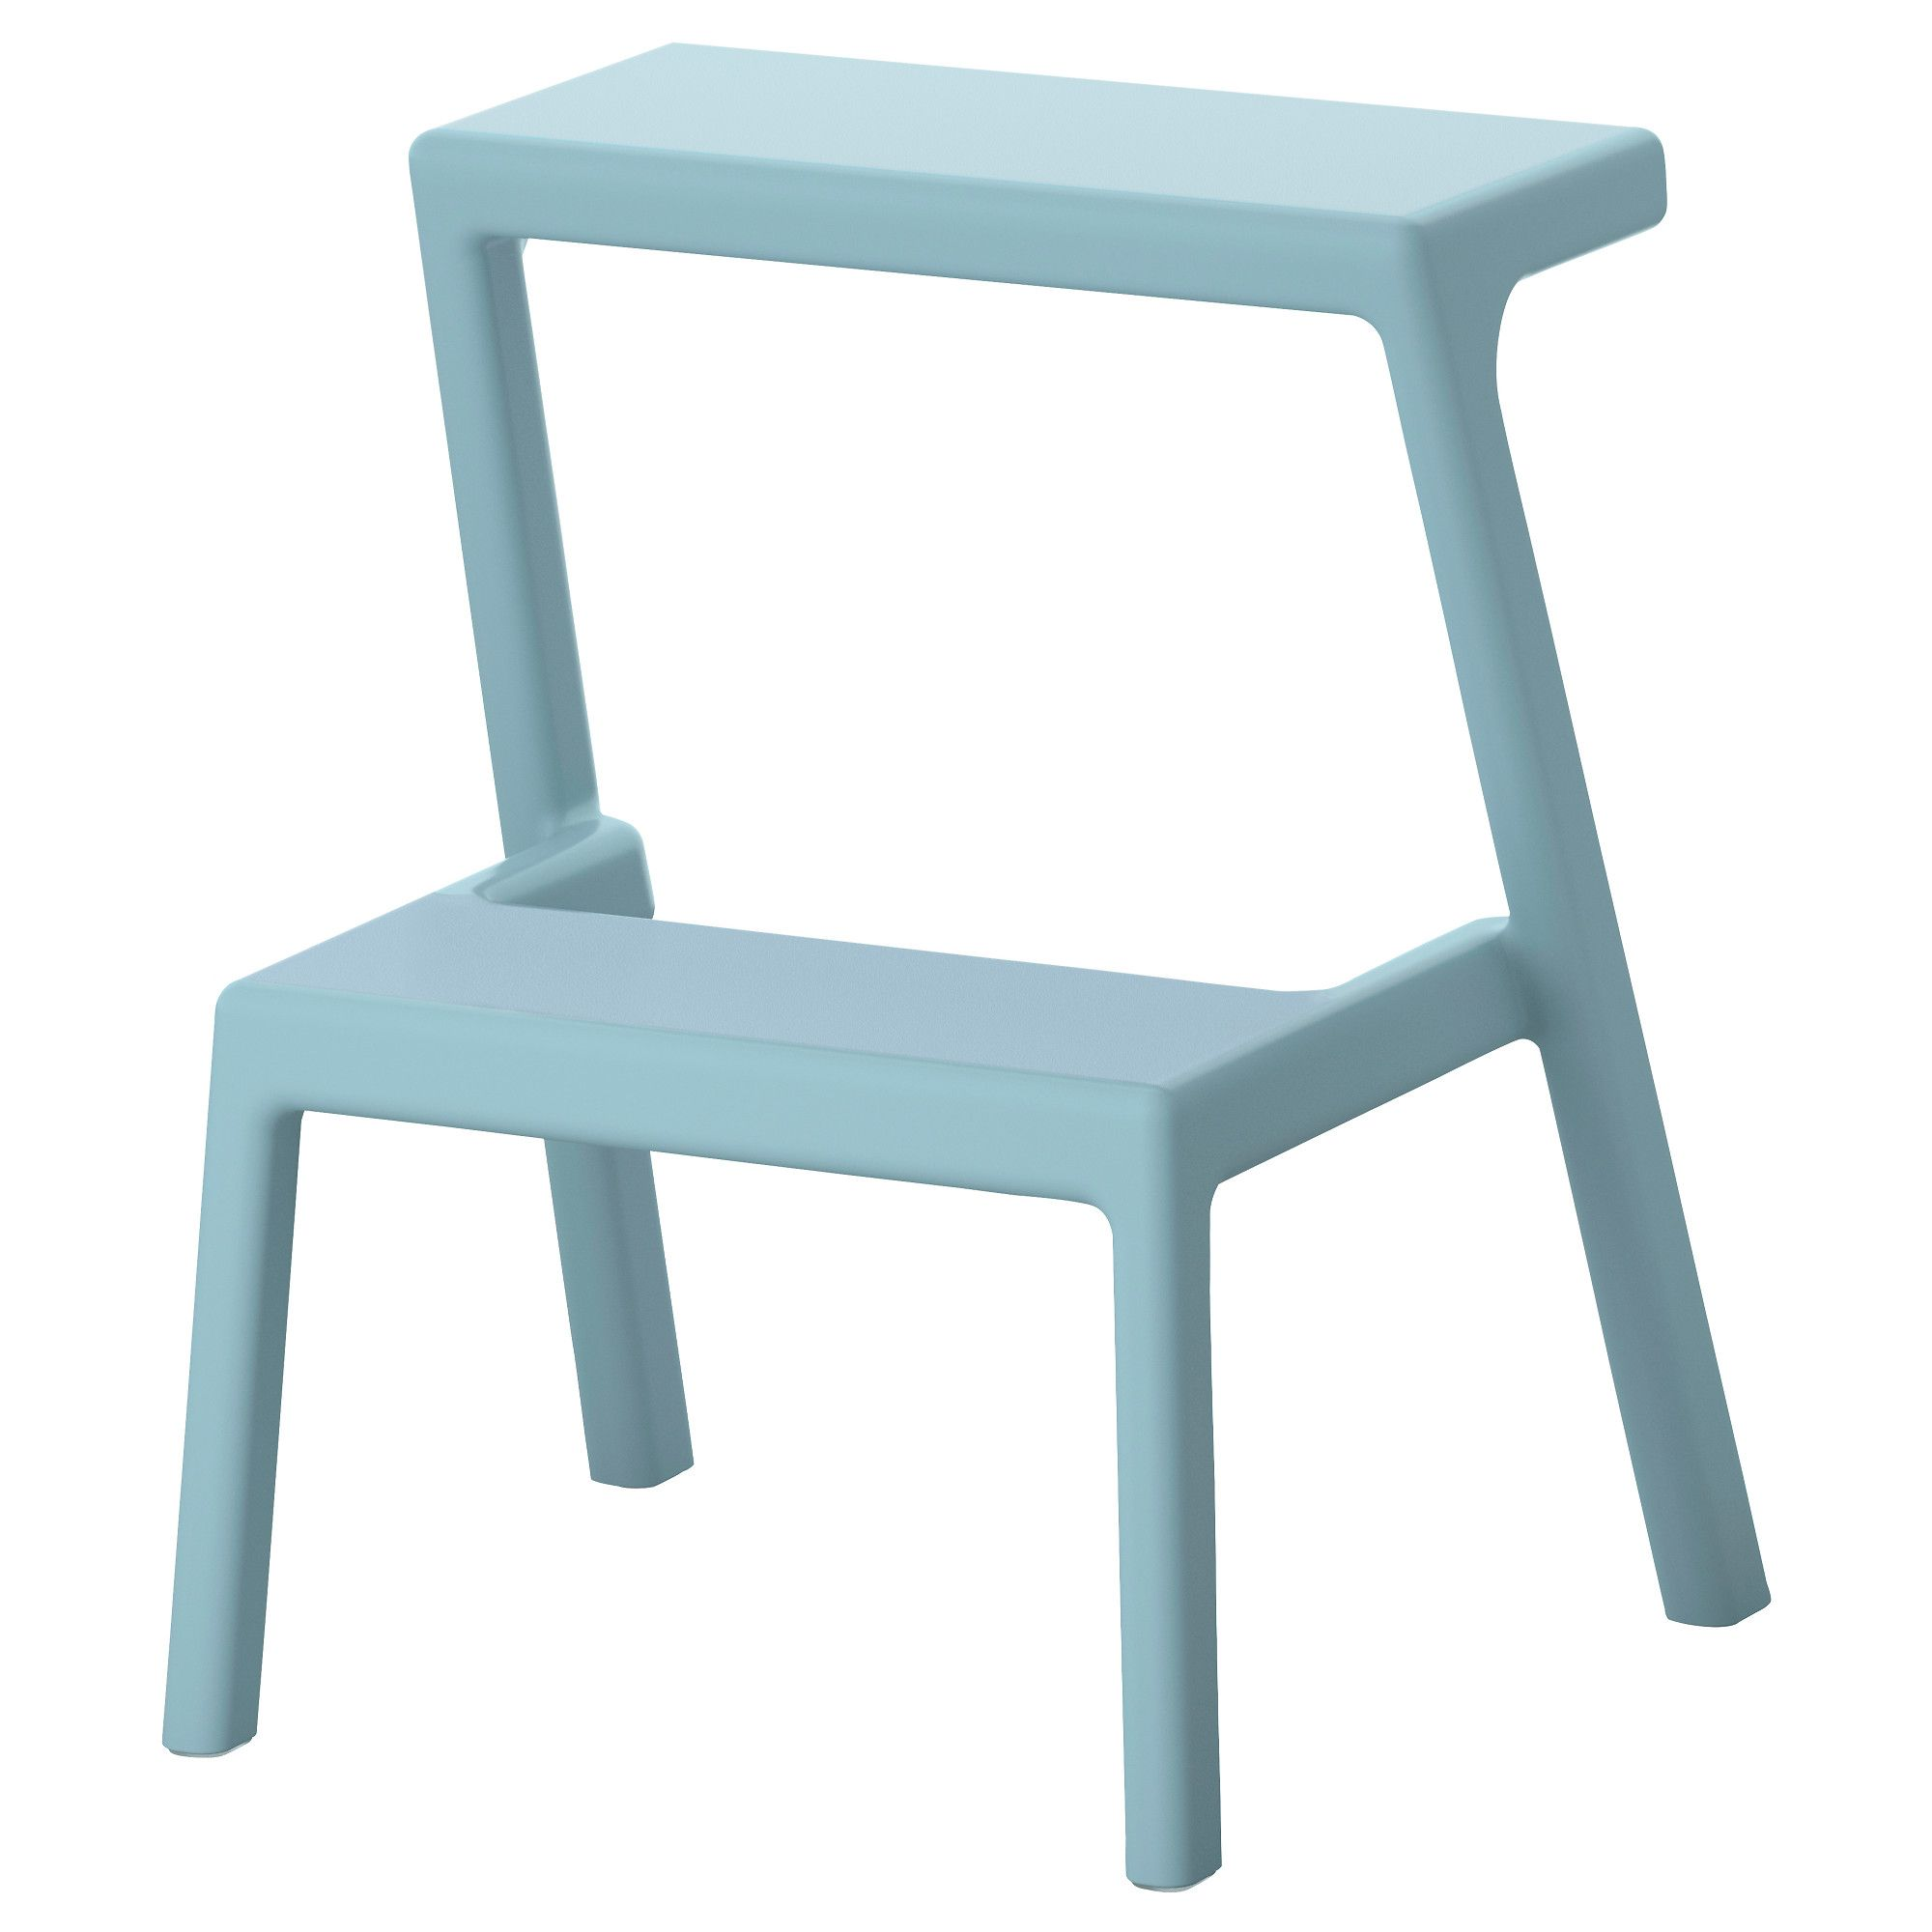 Children Furniture Multifunctional Solid Wood Footstool Childrens Double-layer Stool Non-slip Climbing Step Ladder Step Stool Stool Wash Benc Terrific Value Children Chairs